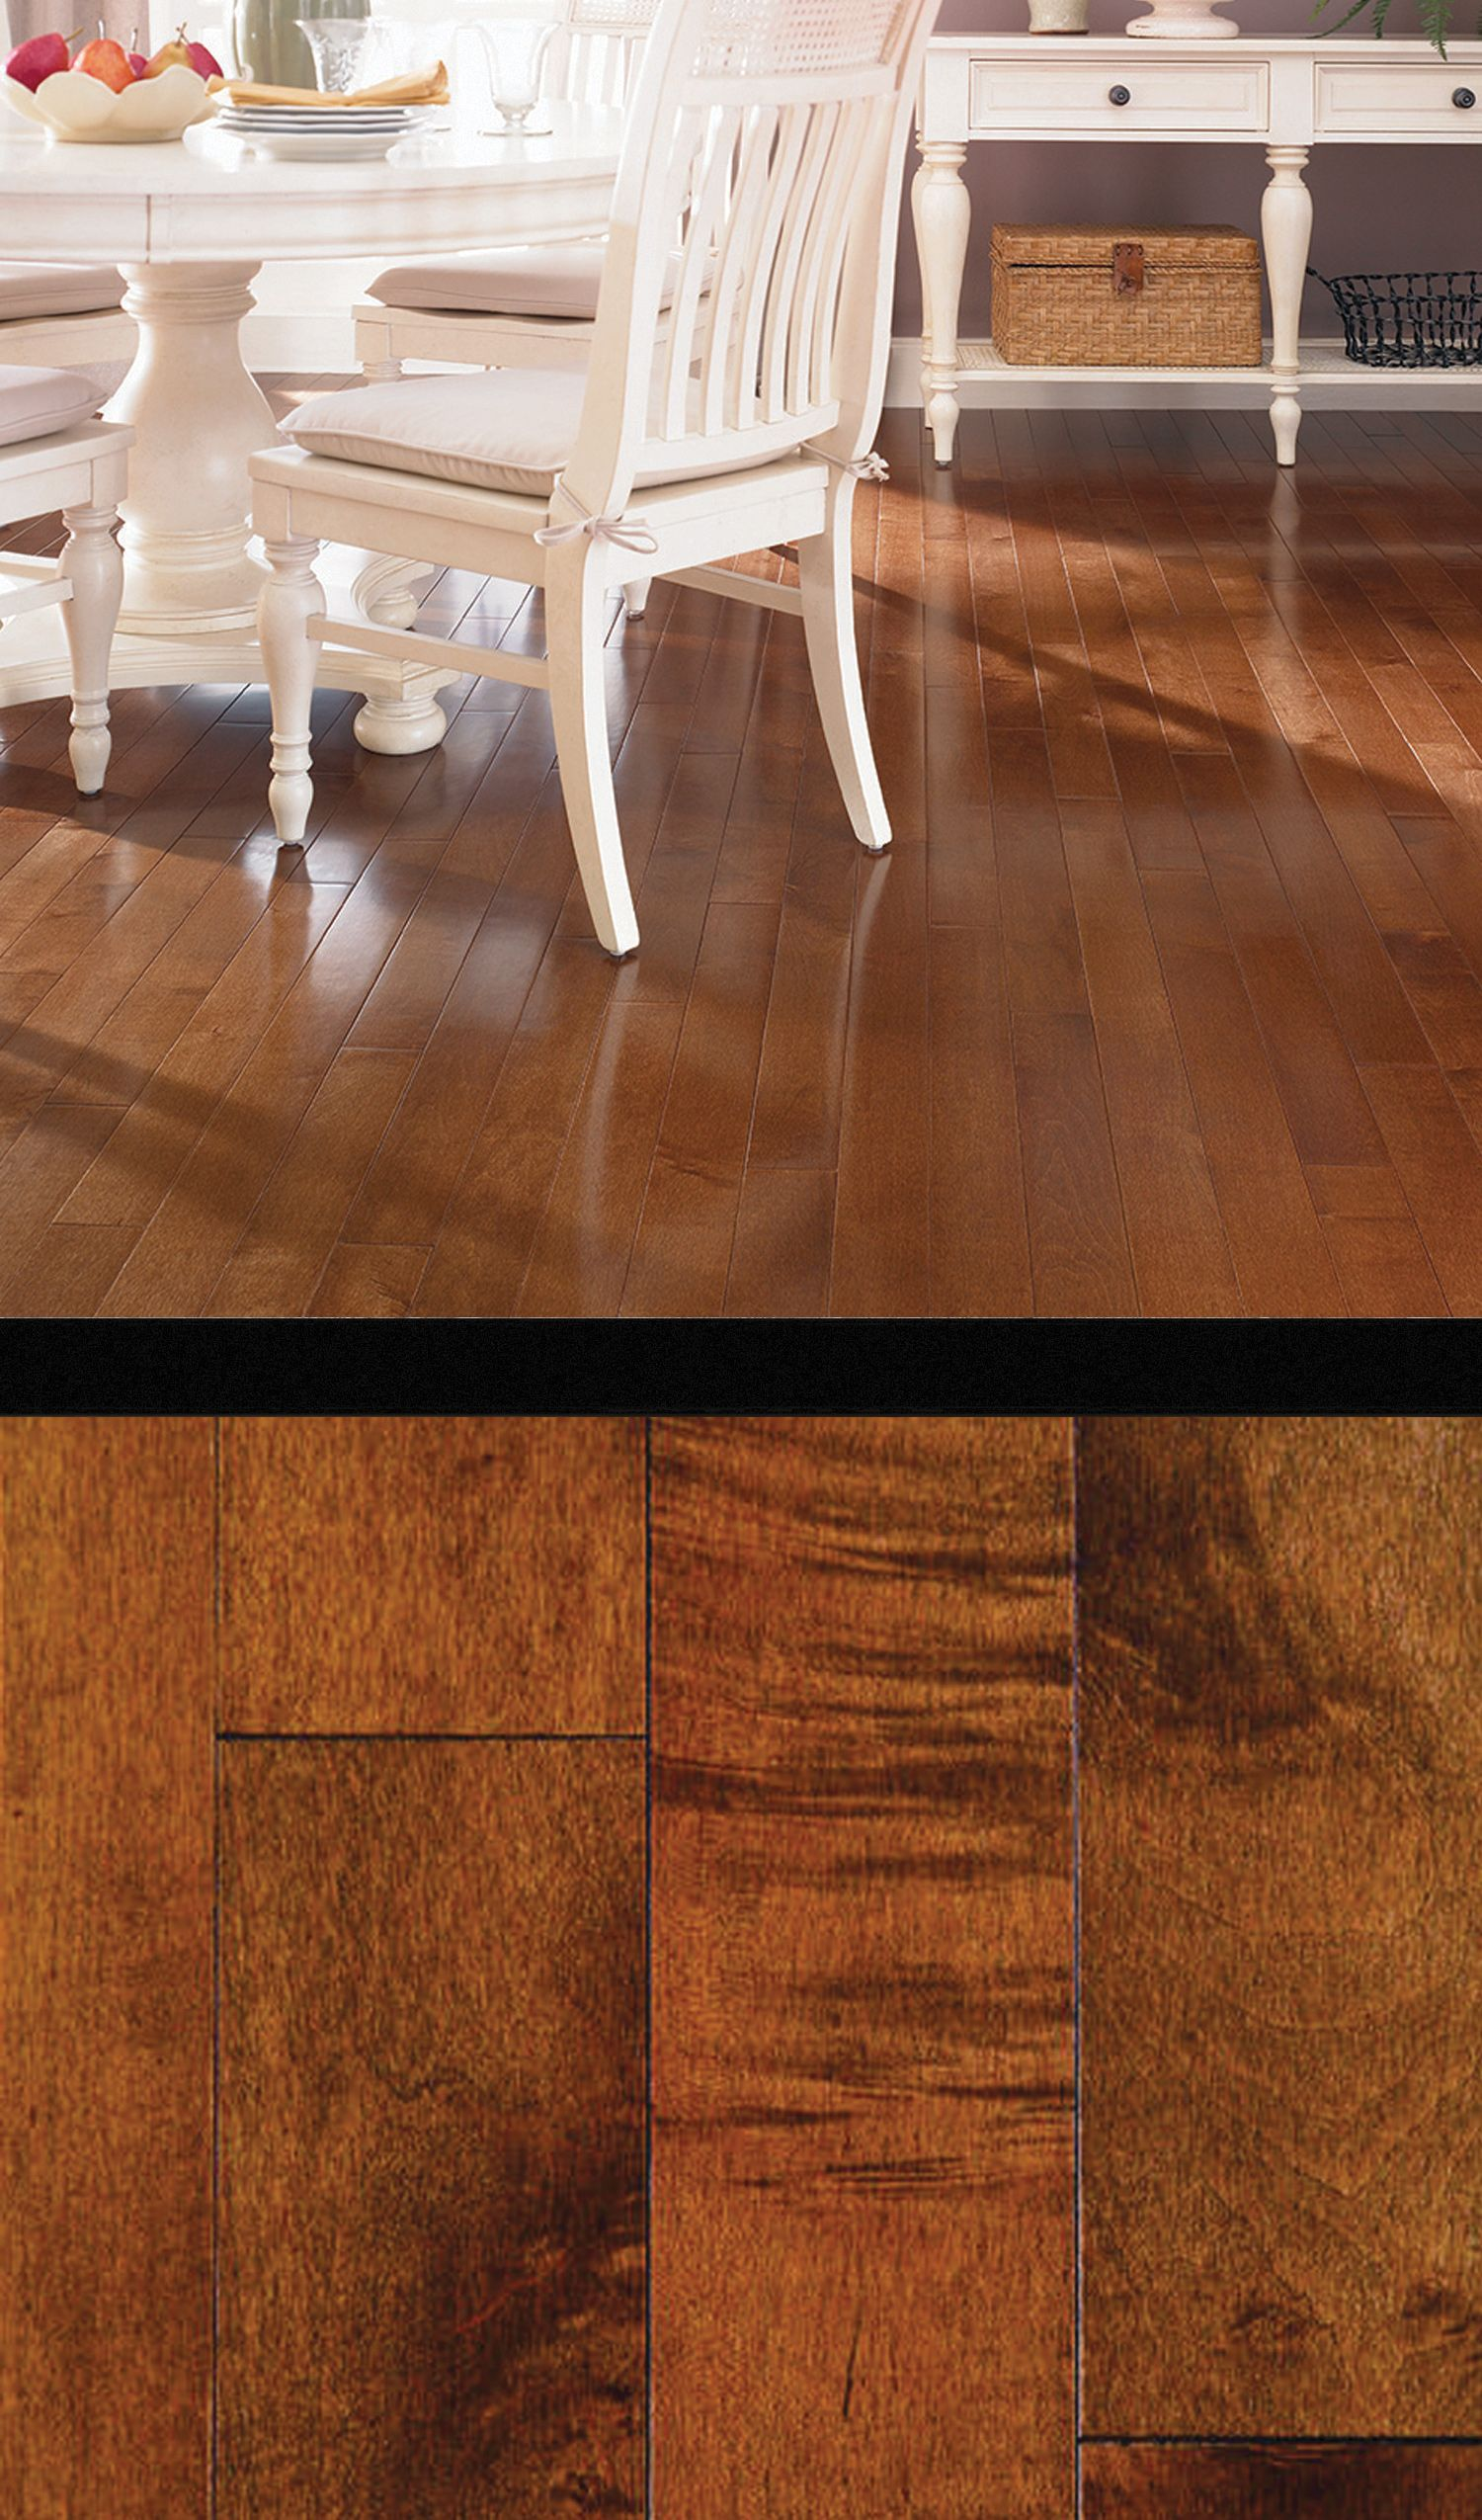 transform your home with maple solid hardwood flooring this hardwood features a